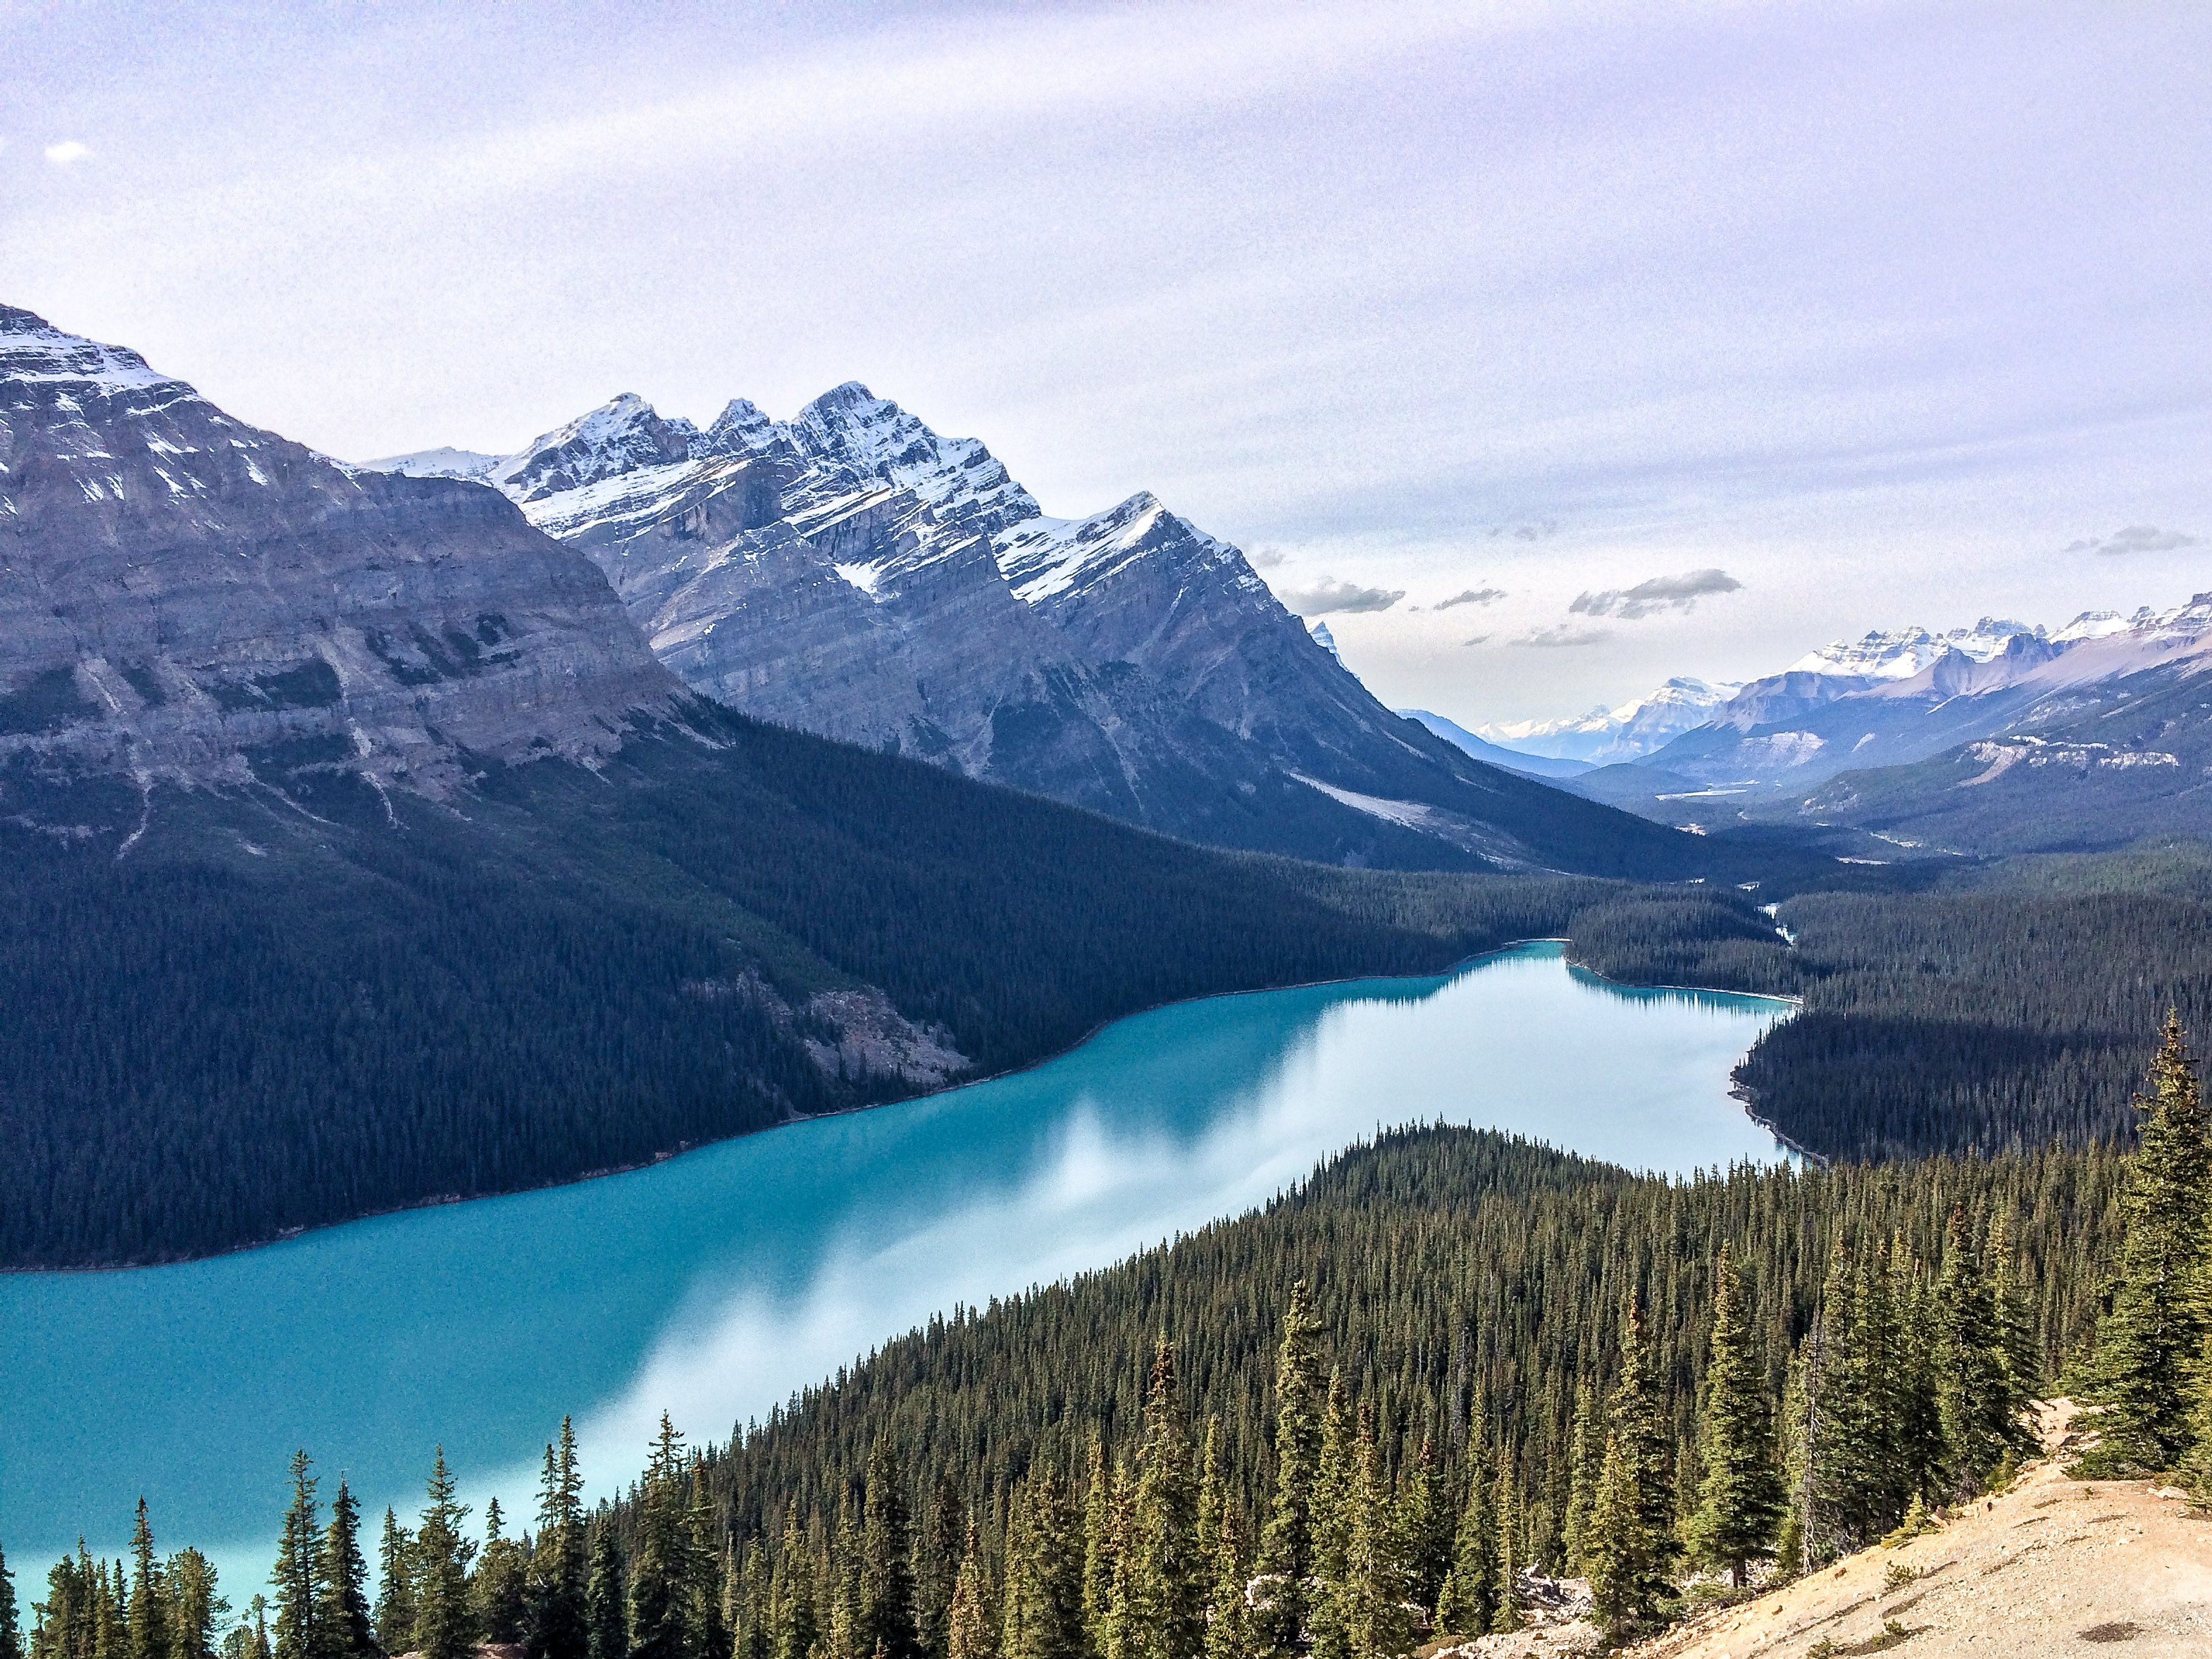 Peyto Lake Banff National Park Alberta Canada 18257 wallpaper